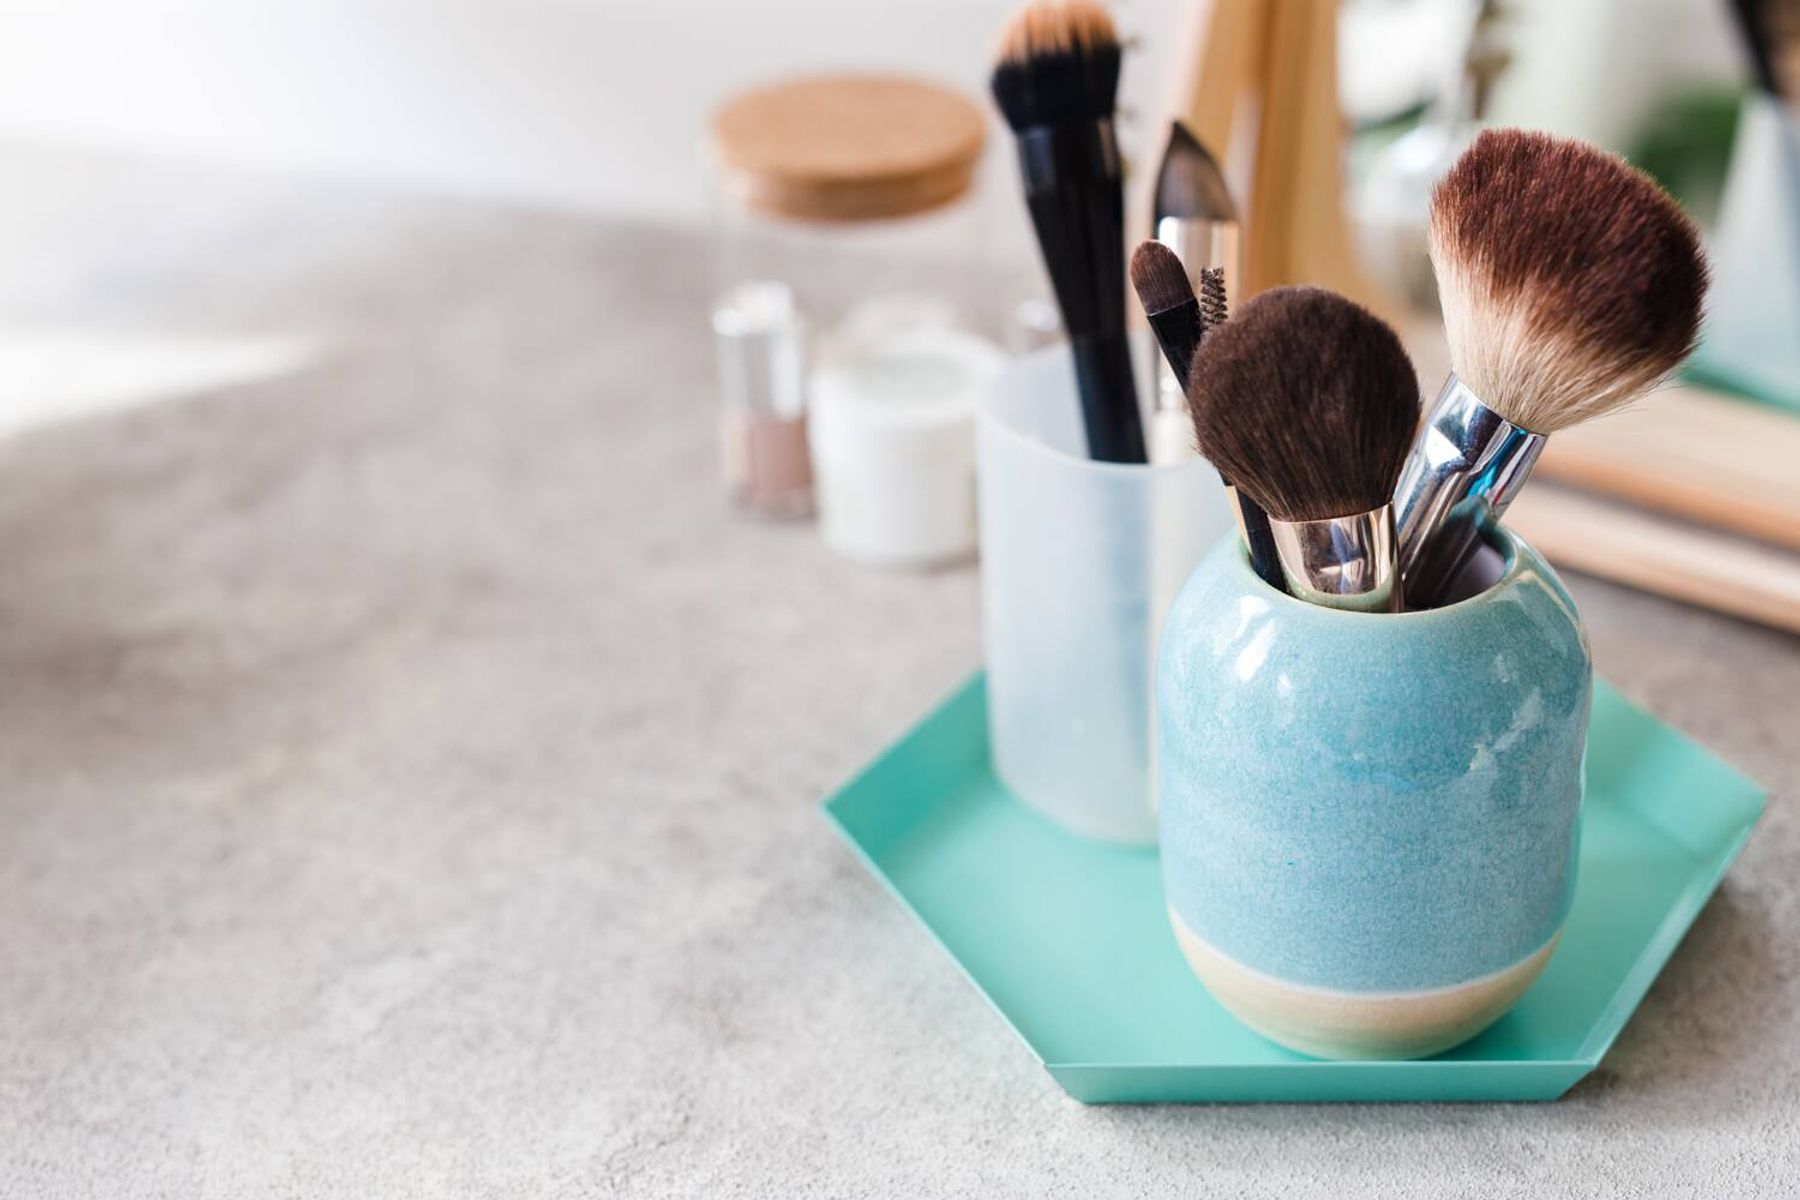 make-up brushes in a container